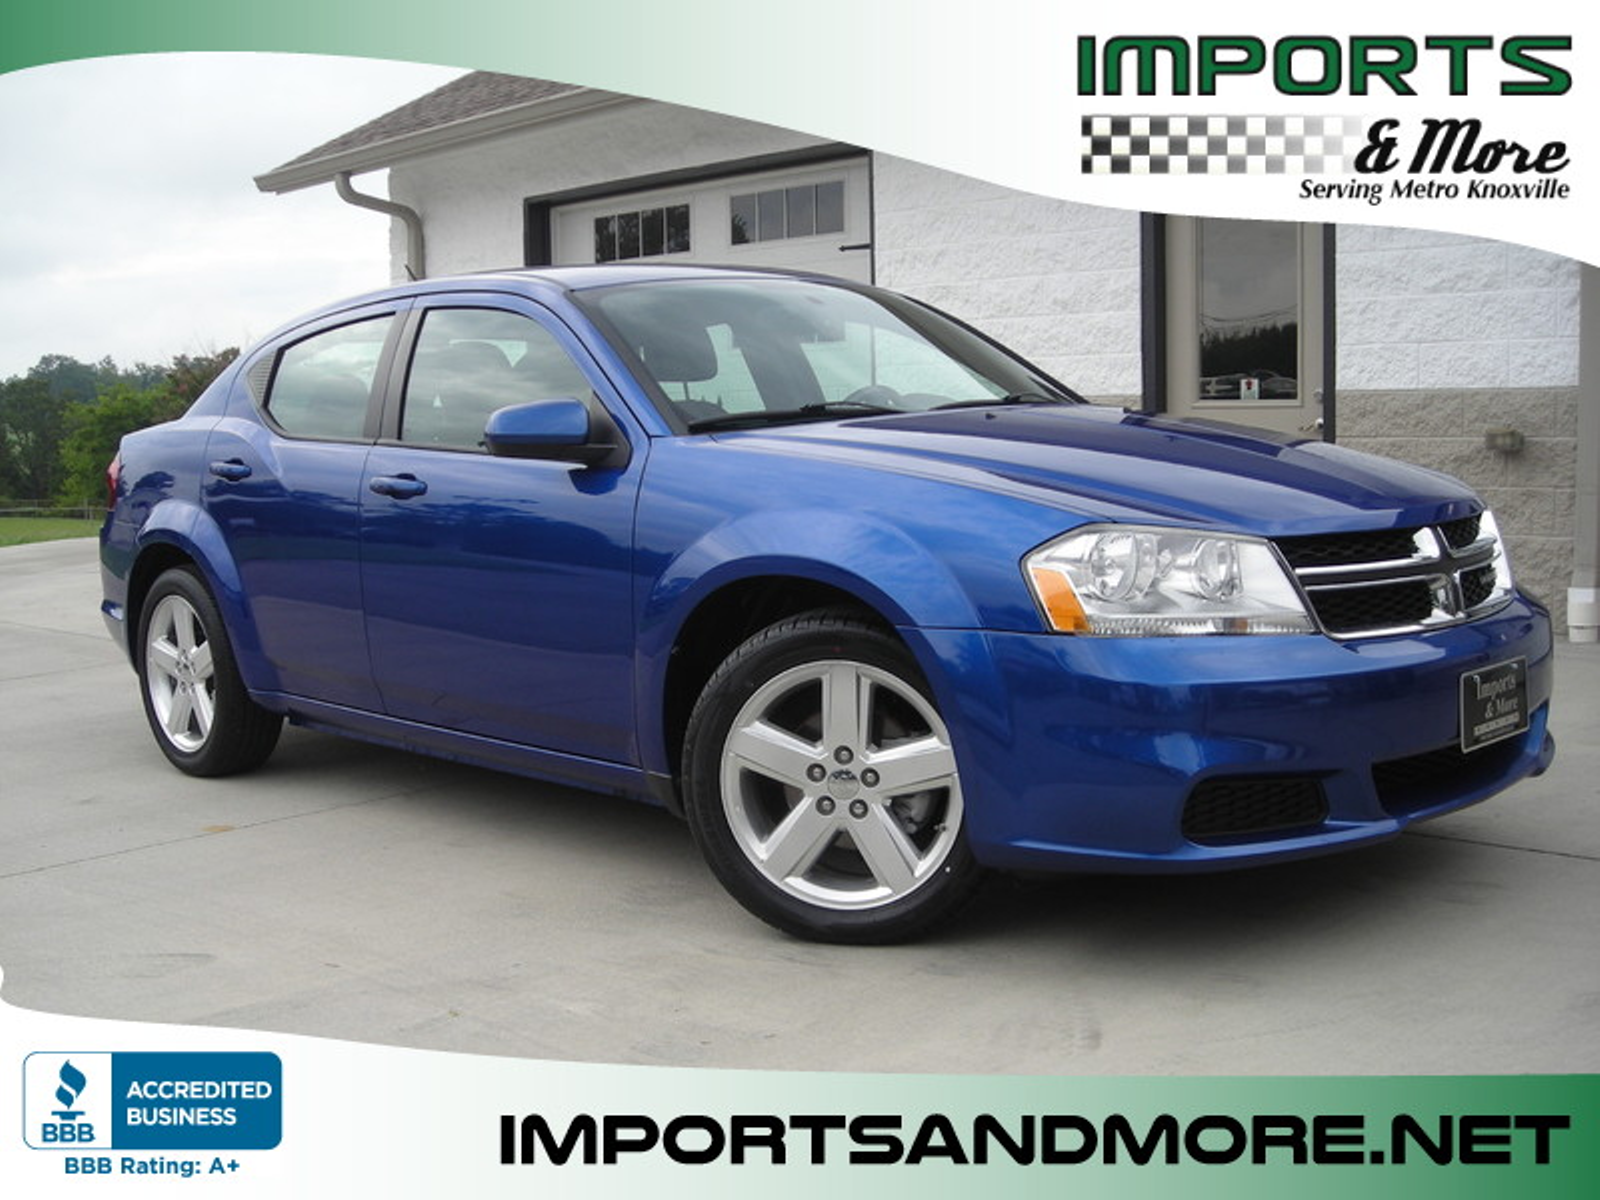 2012 Dodge Avenger SXT Imports and More Inc